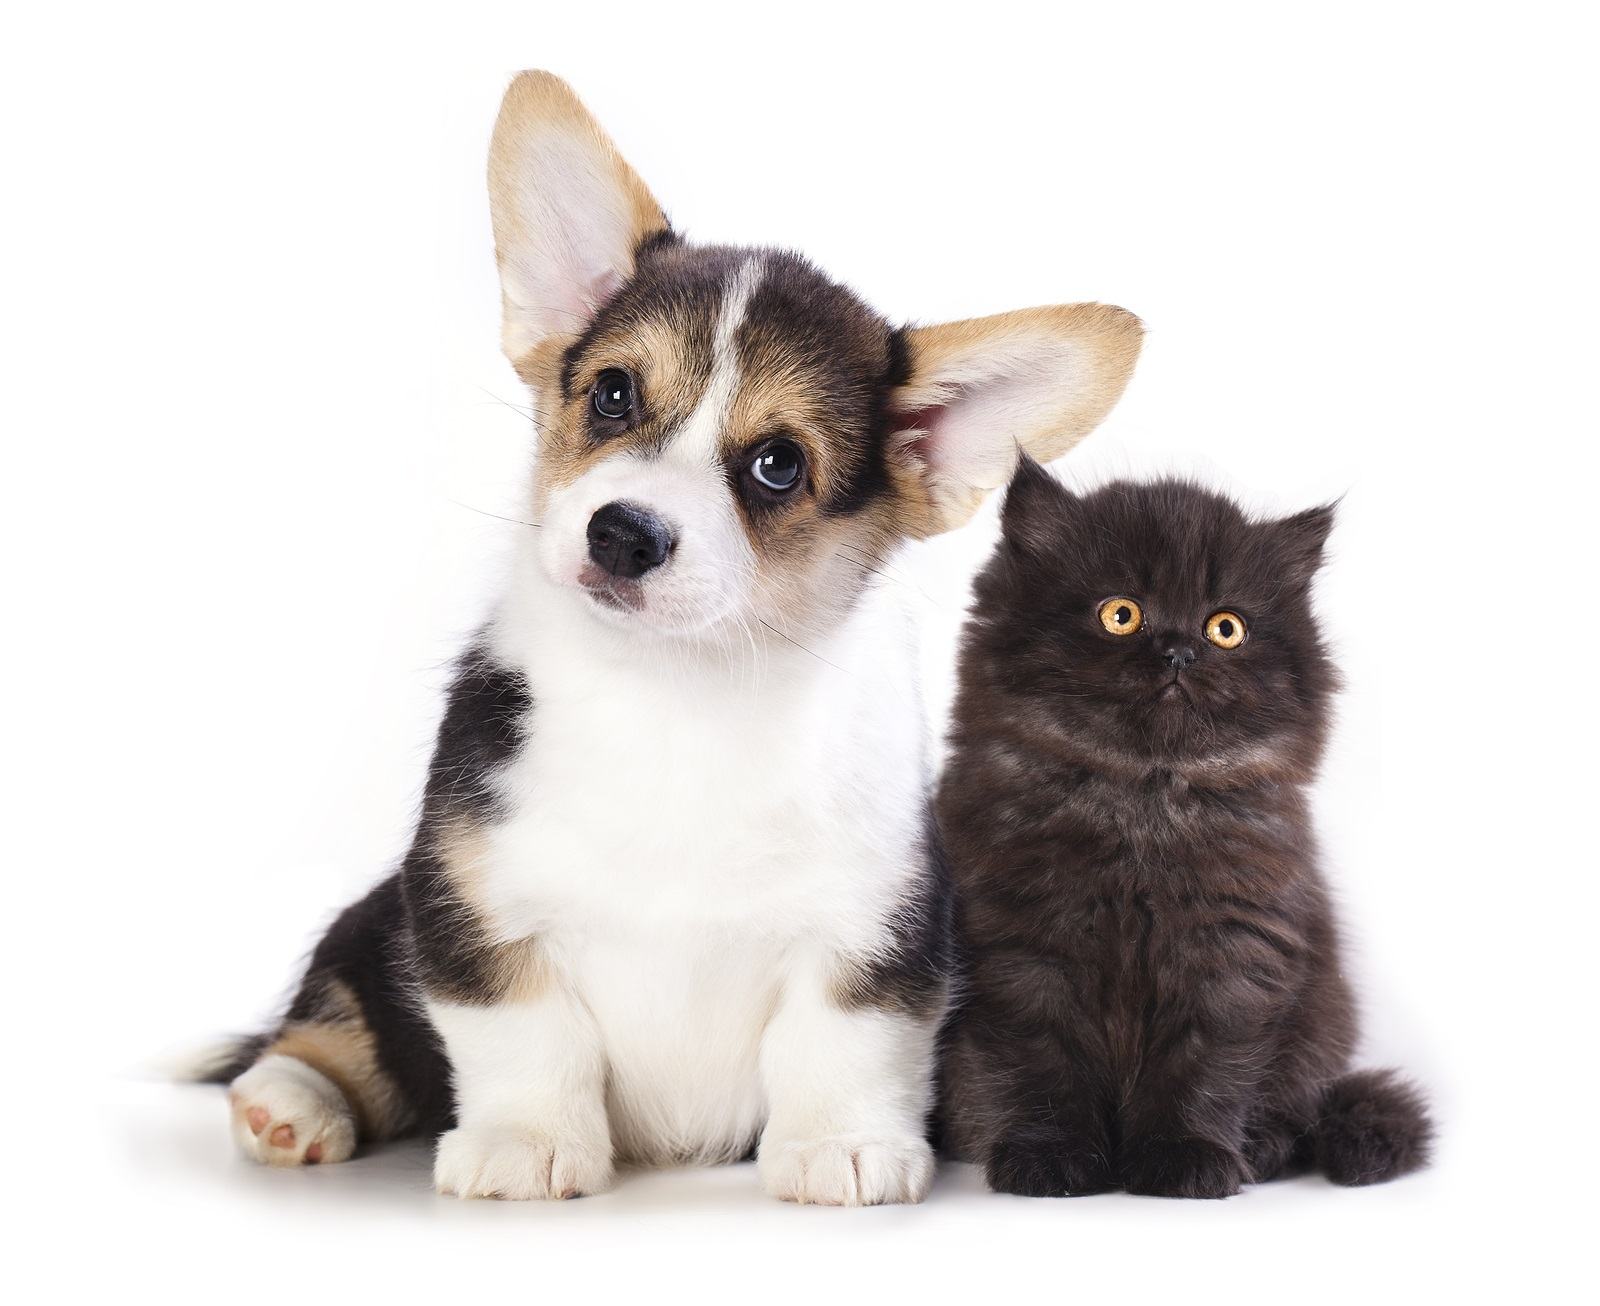 Getting a New Puppy or Kitten? A few good things to know…